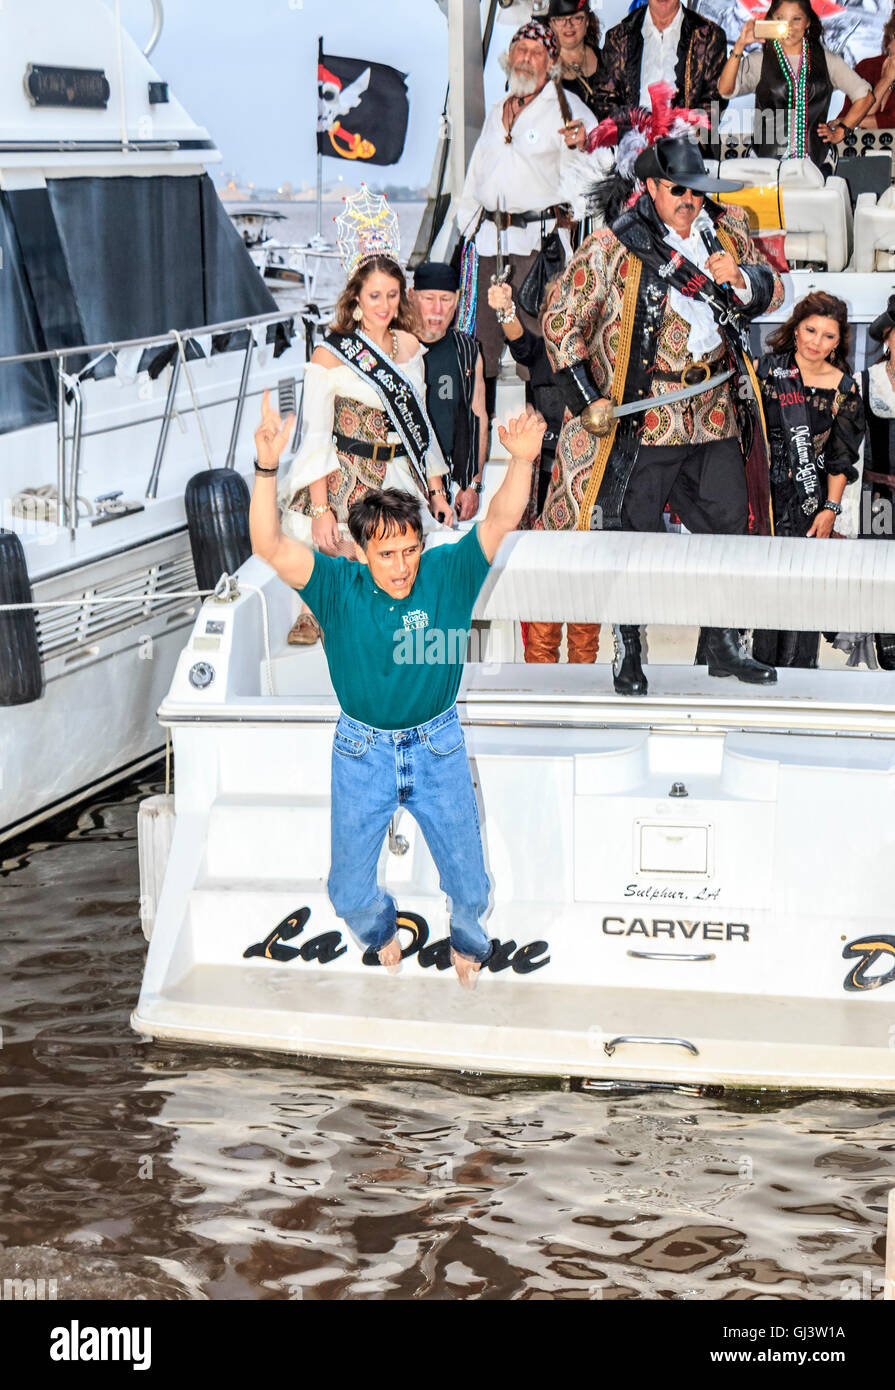 The Mayor of Lake Charles, Louisiana, 'walking the plank' during Contraband Days in Lake Charles, LA. - Stock Image